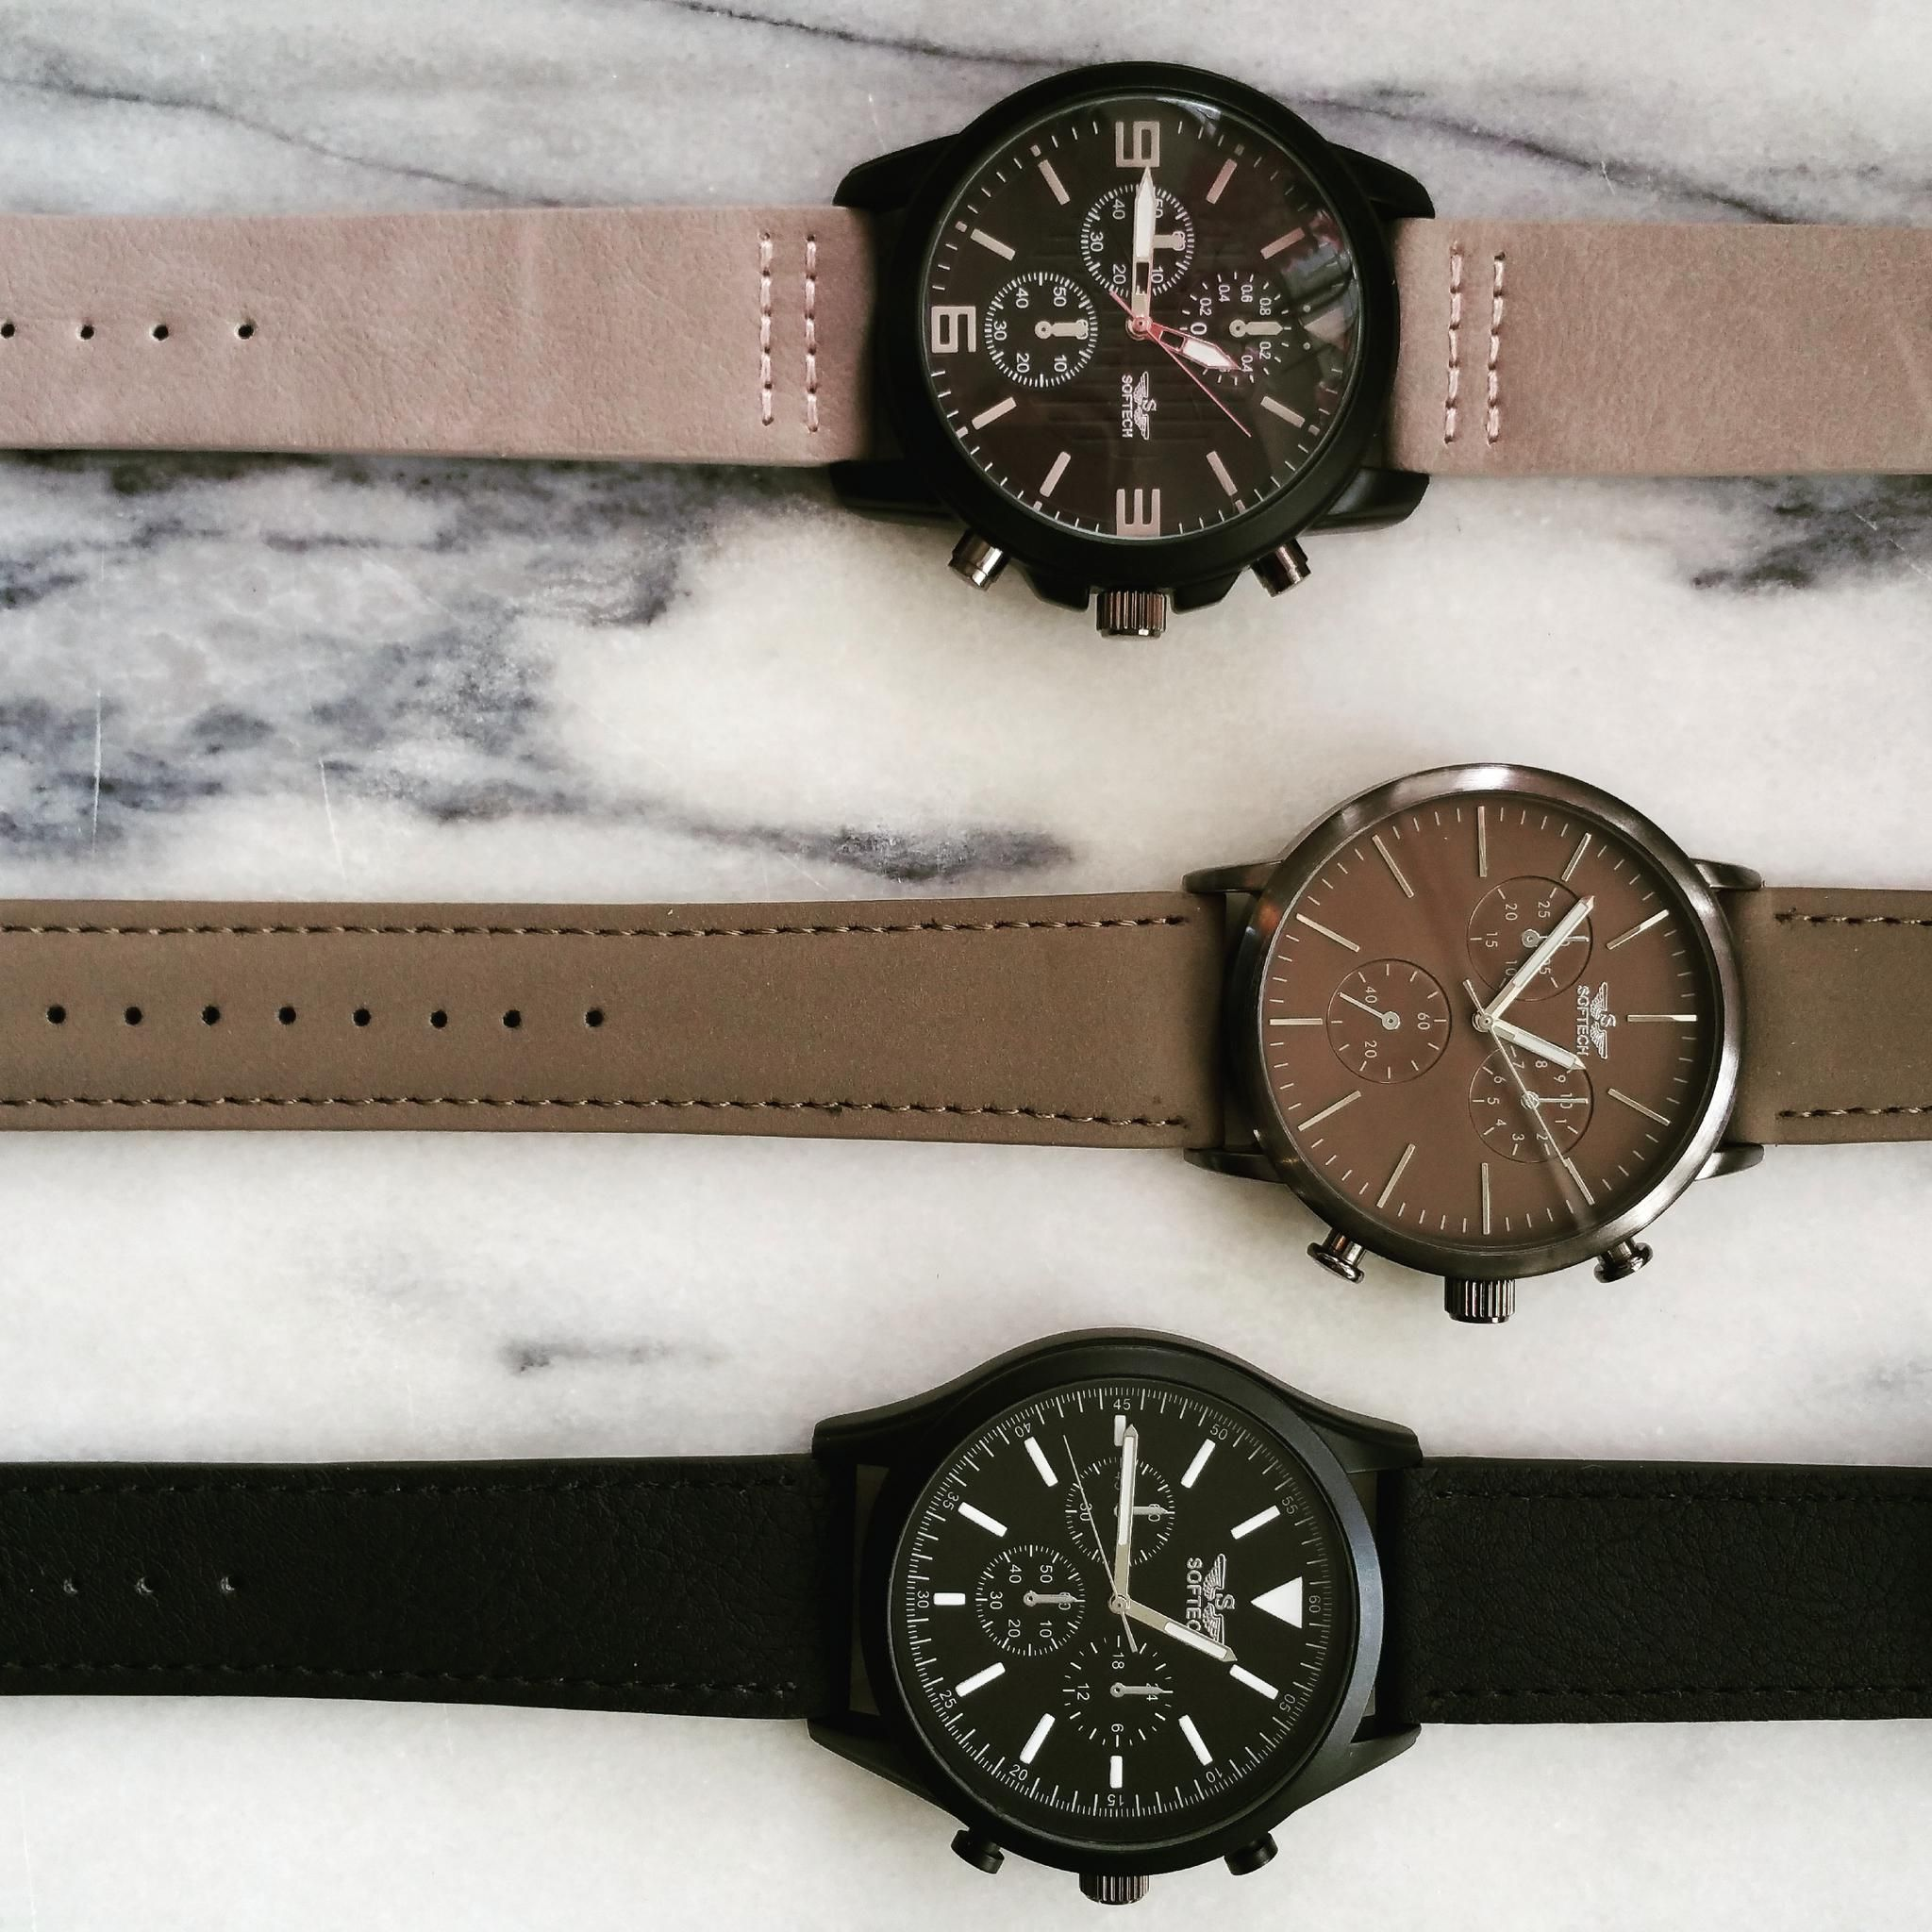 Softech Watches By Sellmoor